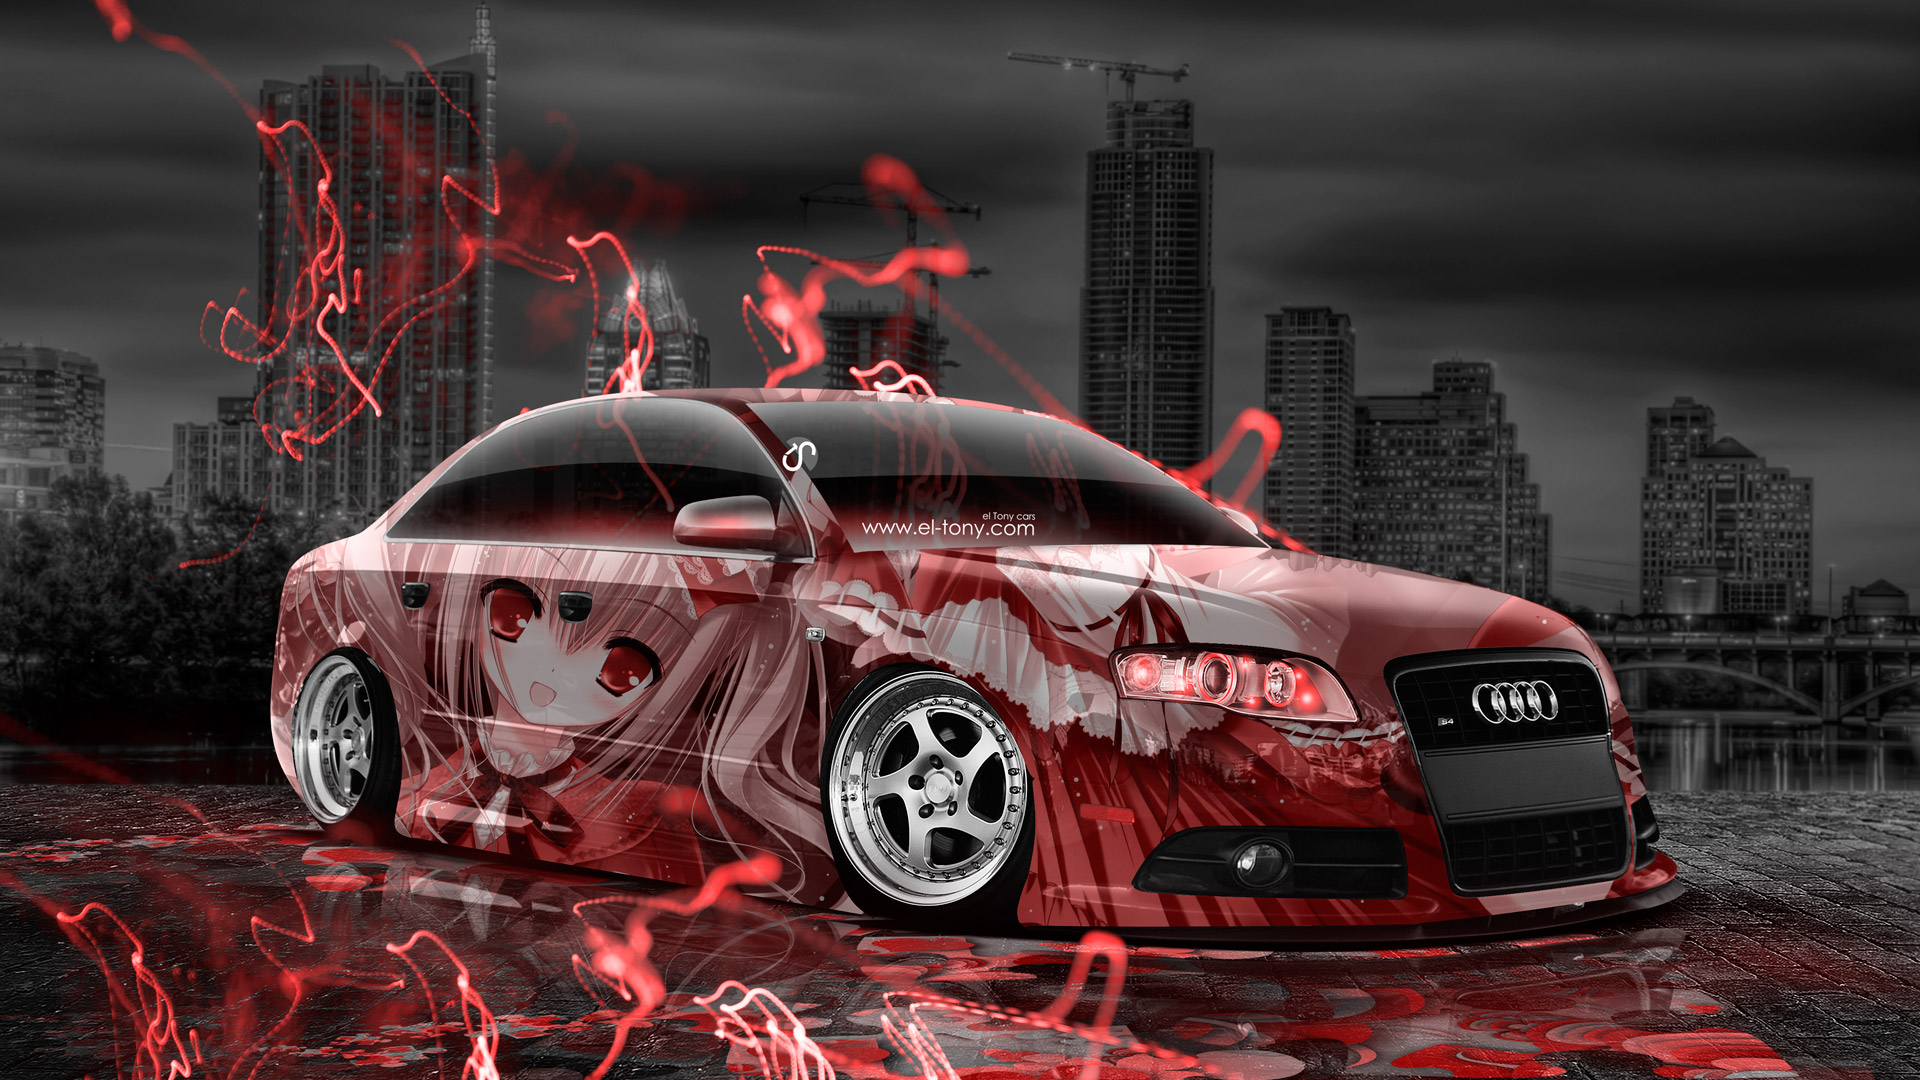 Audi S4 Tuning Anime Aerography City Car 2015 El Tony